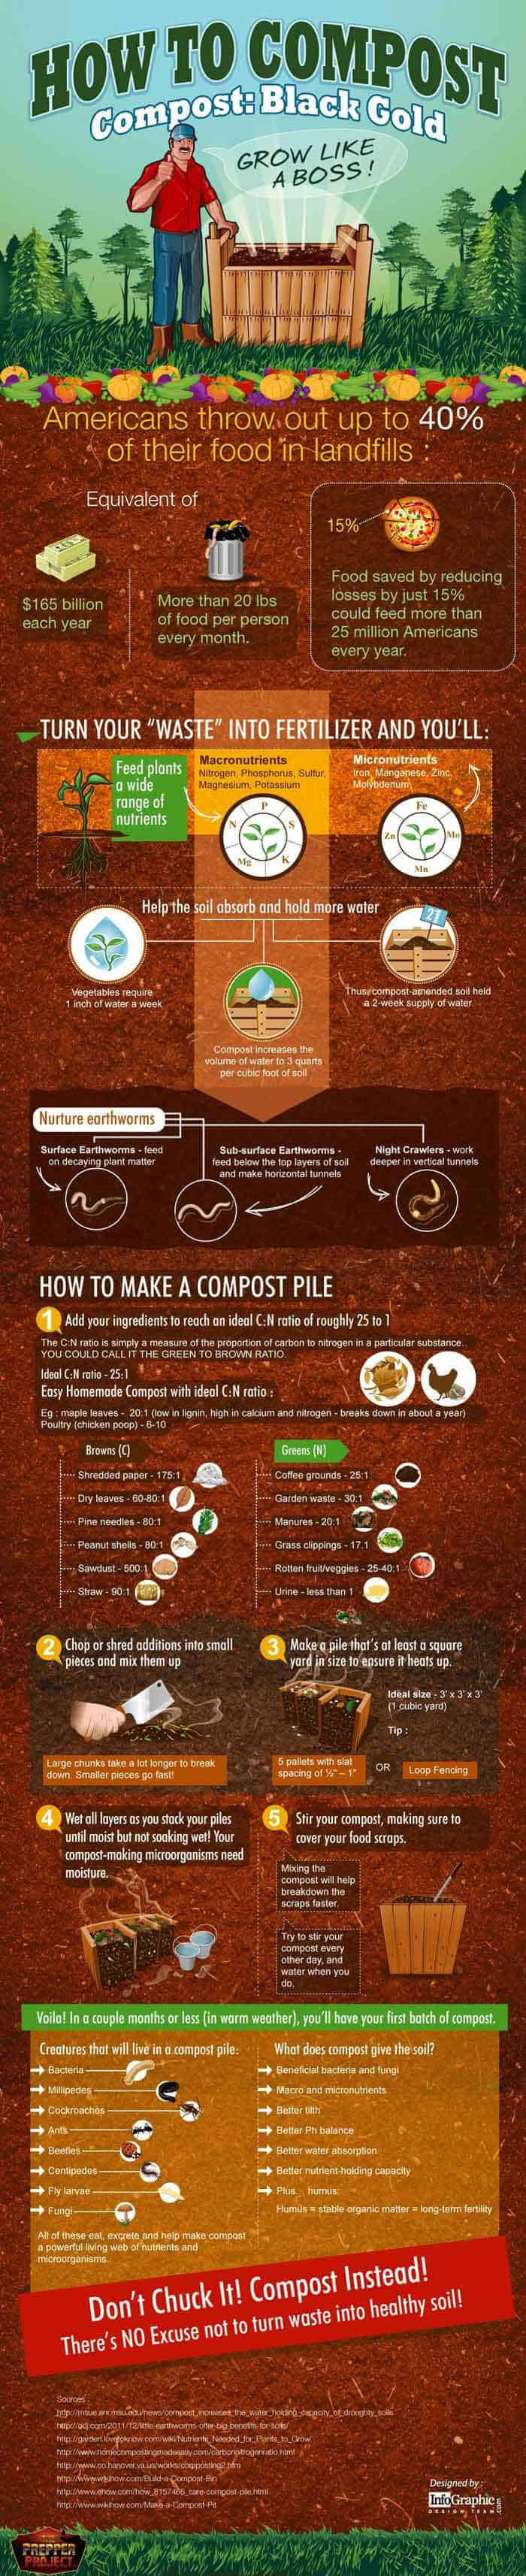 how to make compost step by step